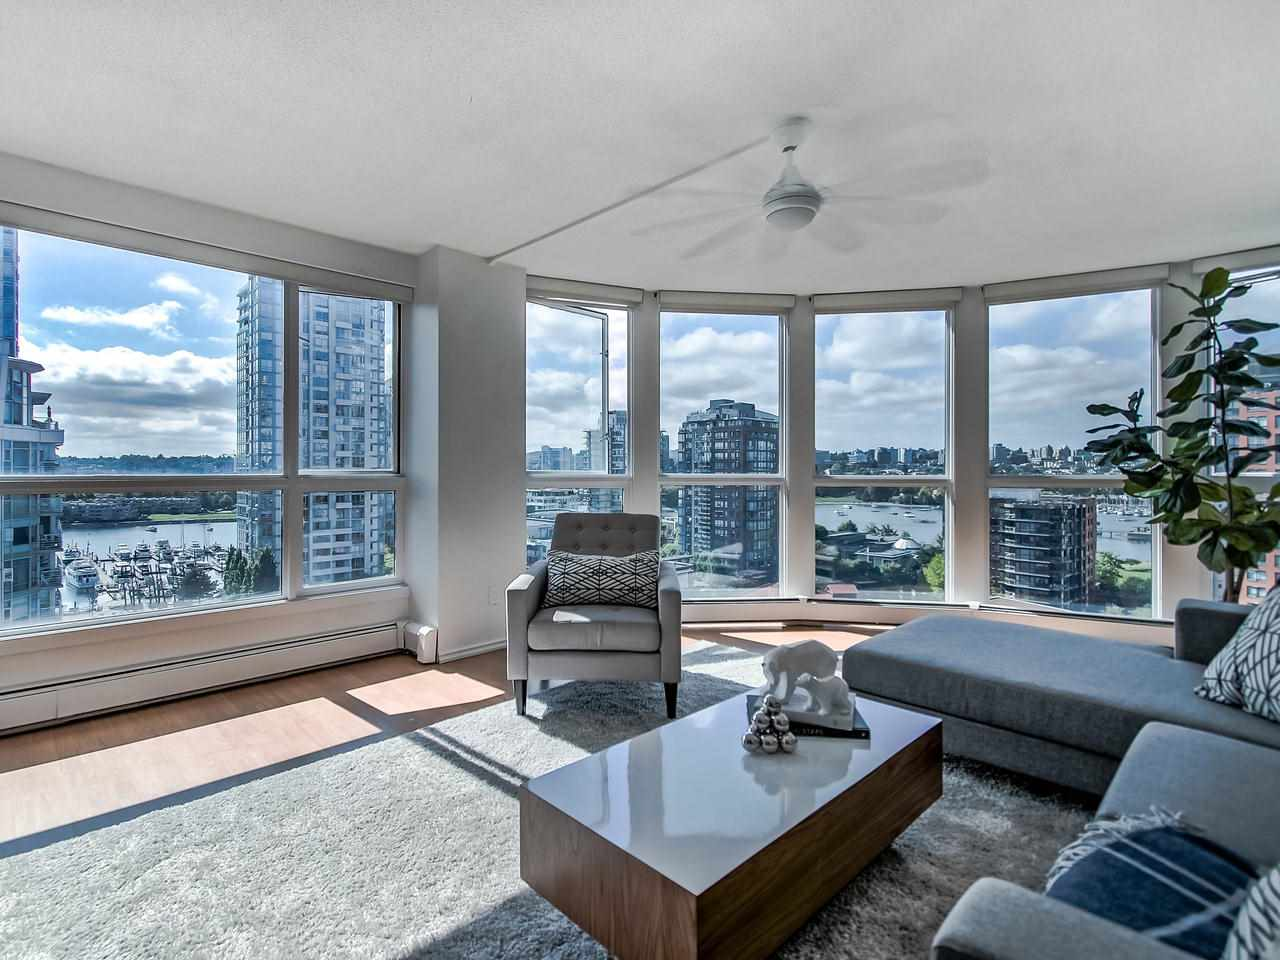 1305 283 DAVIE STREET - Yaletown Apartment/Condo for sale, 3 Bedrooms (R2491218) - #1